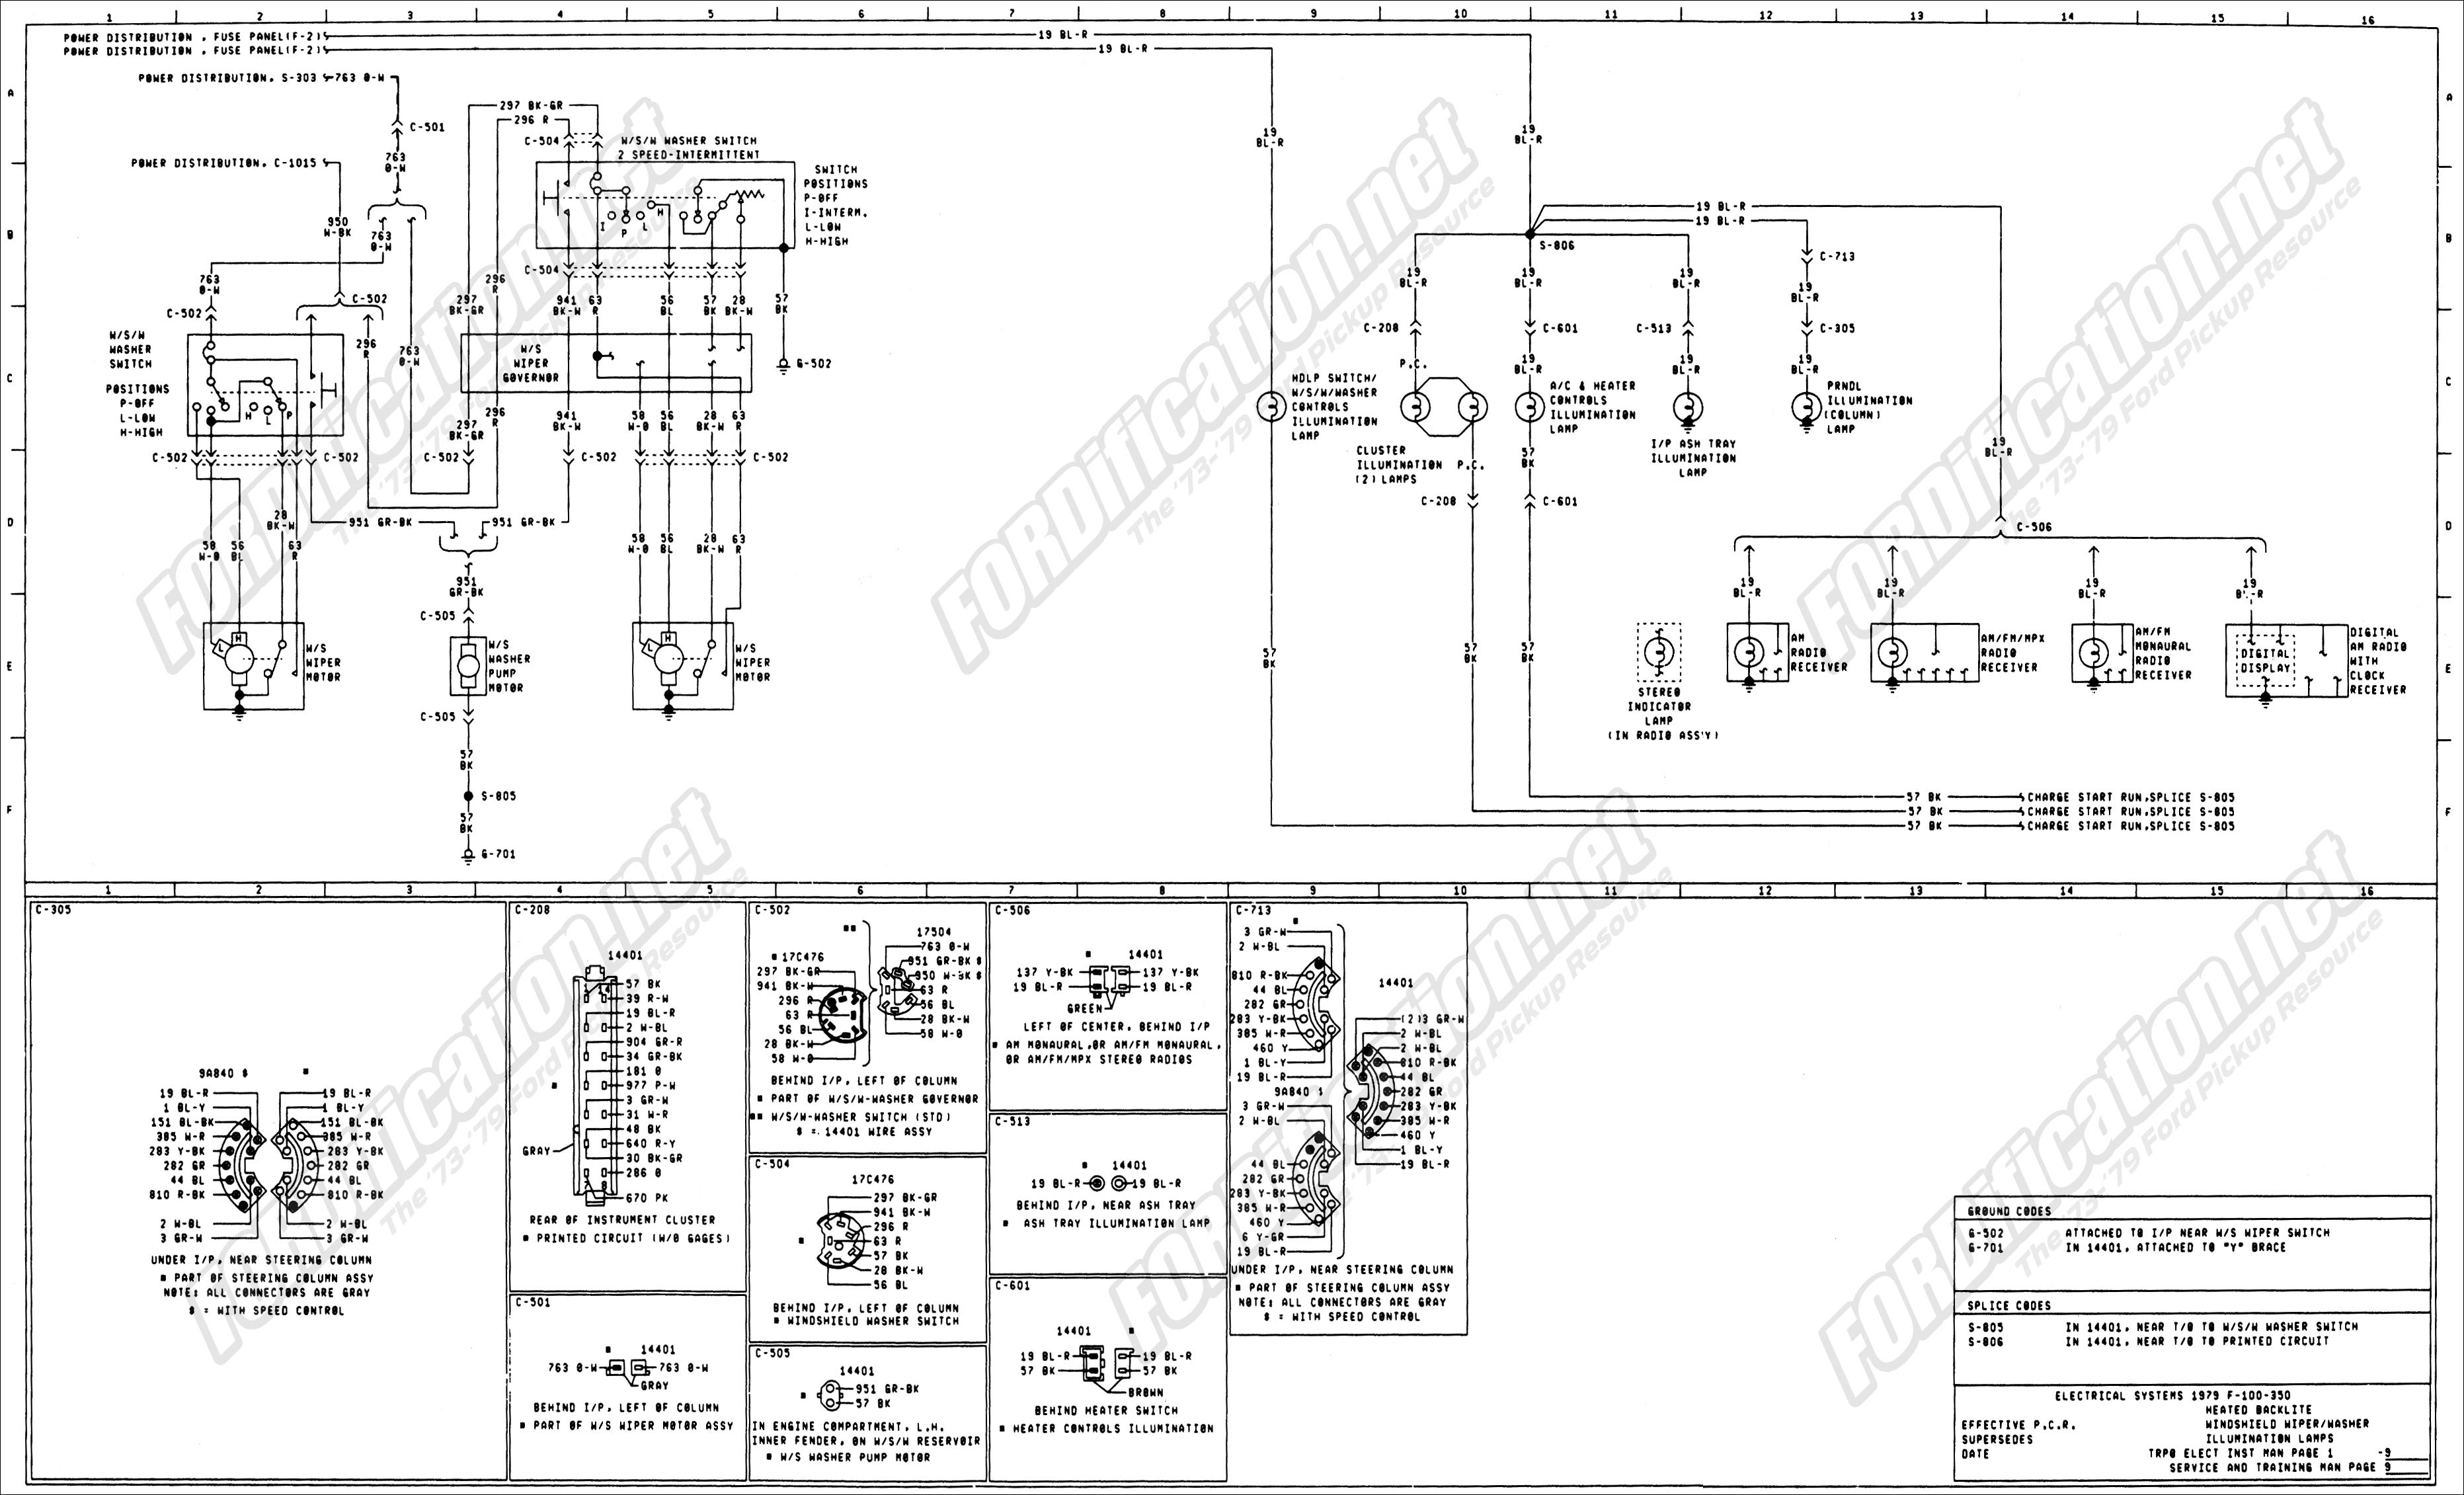 Wiring Diagram For 1996 Geo Metro Not Lossing 1995 Prizm Engine 91 Ford Tempo 1991 Fuse Box Stereo